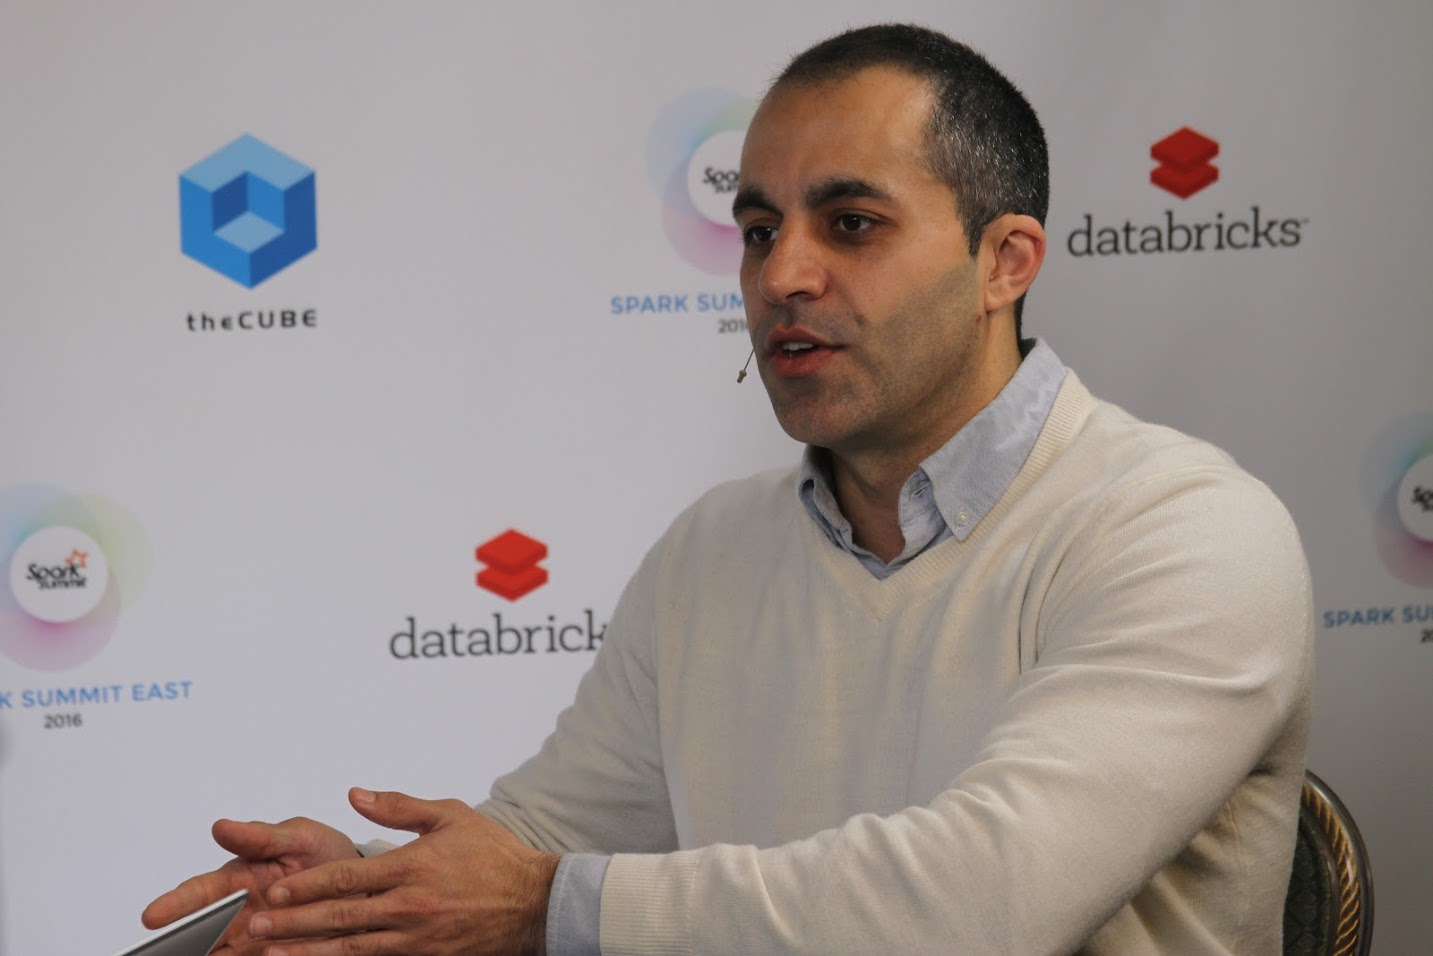 Big-data firm Databricks bags $400M late-stage funding round